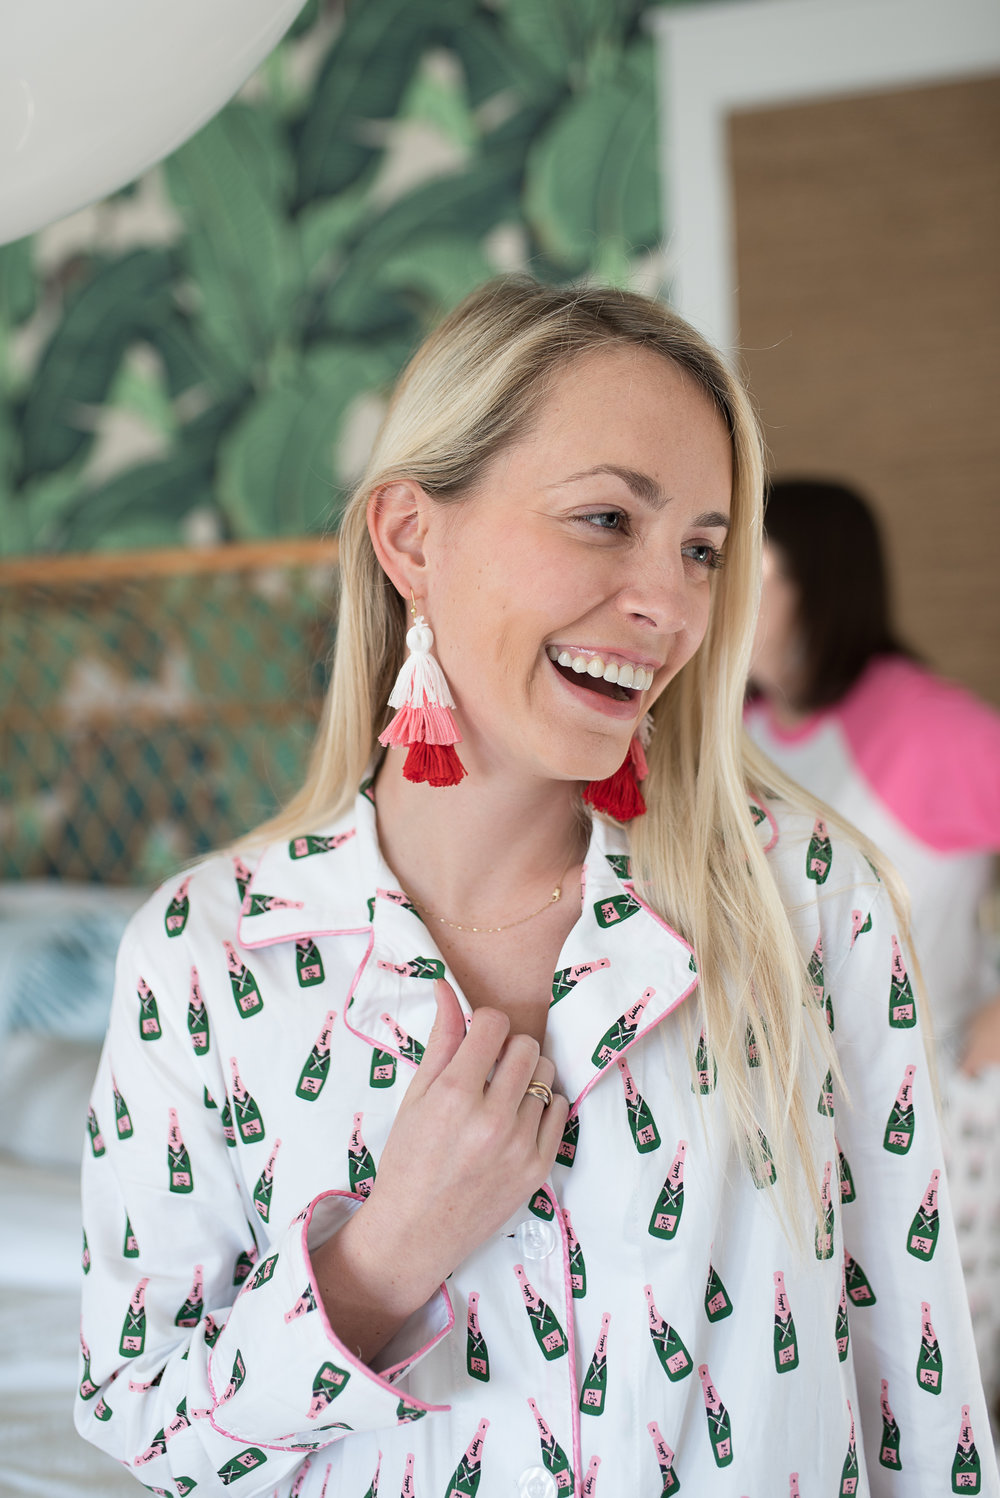 Slumber party with pink, white and red tassel earrings and champagne bottle pajamas  //  designed by Cayleigh Hopkins of The Petal Report  //  on A Lowcountry Wedding Magazine